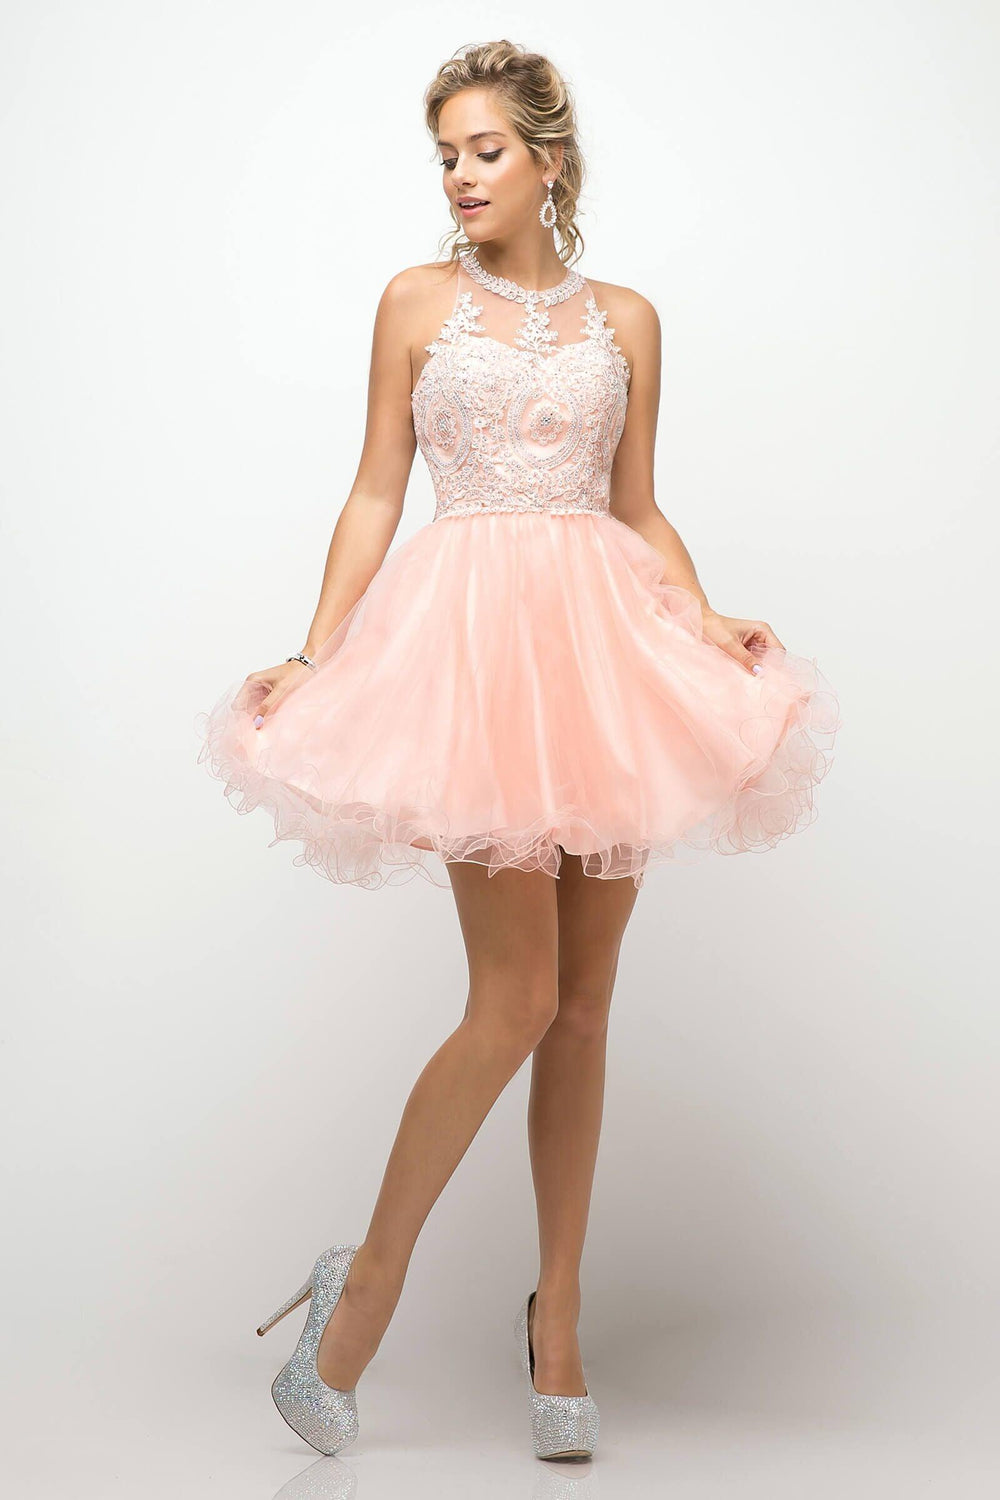 Short Prom Halter Neck Homecoming Dress - The Dress Outlet Blush